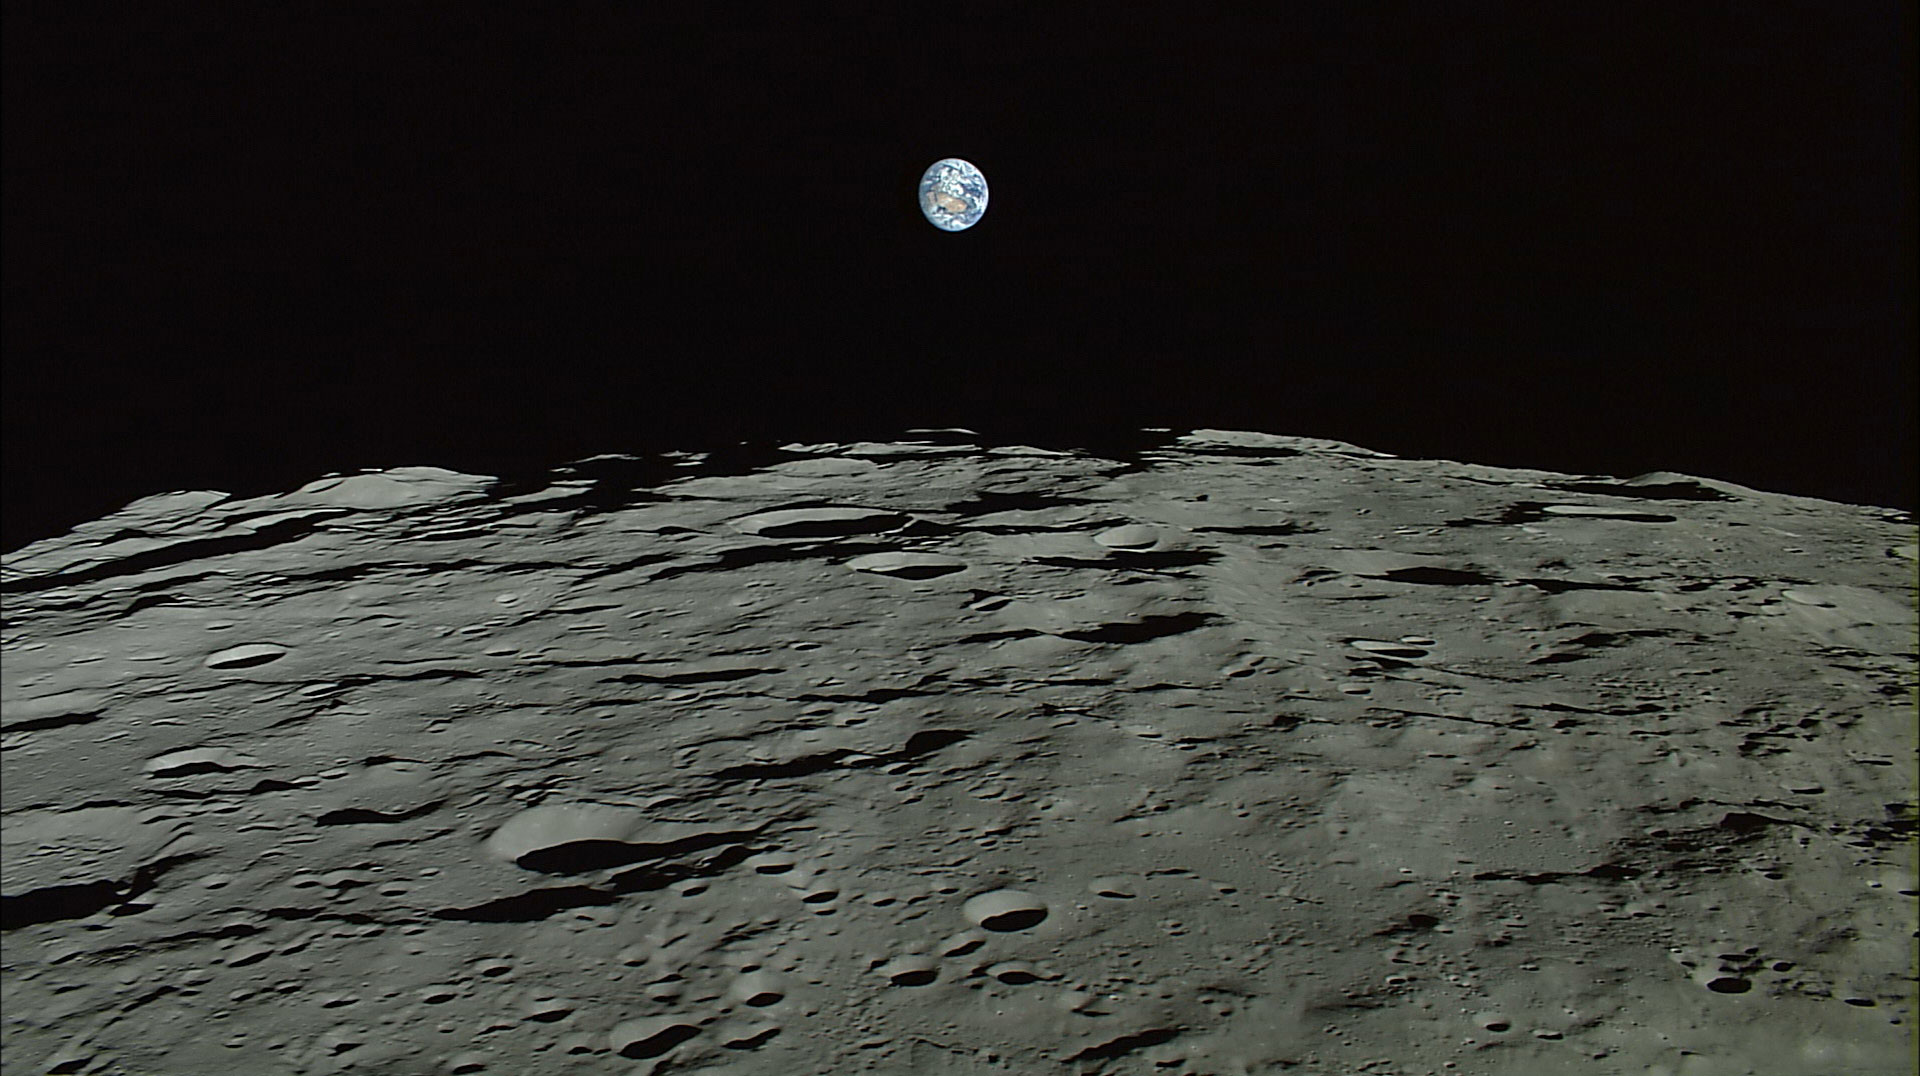 The Japanese Aerospace Exploration Agency, JAXA, released all of the data from its Kayuga spacecraft in Oct. 2016 showing images of the Earth captured from the moons surface.